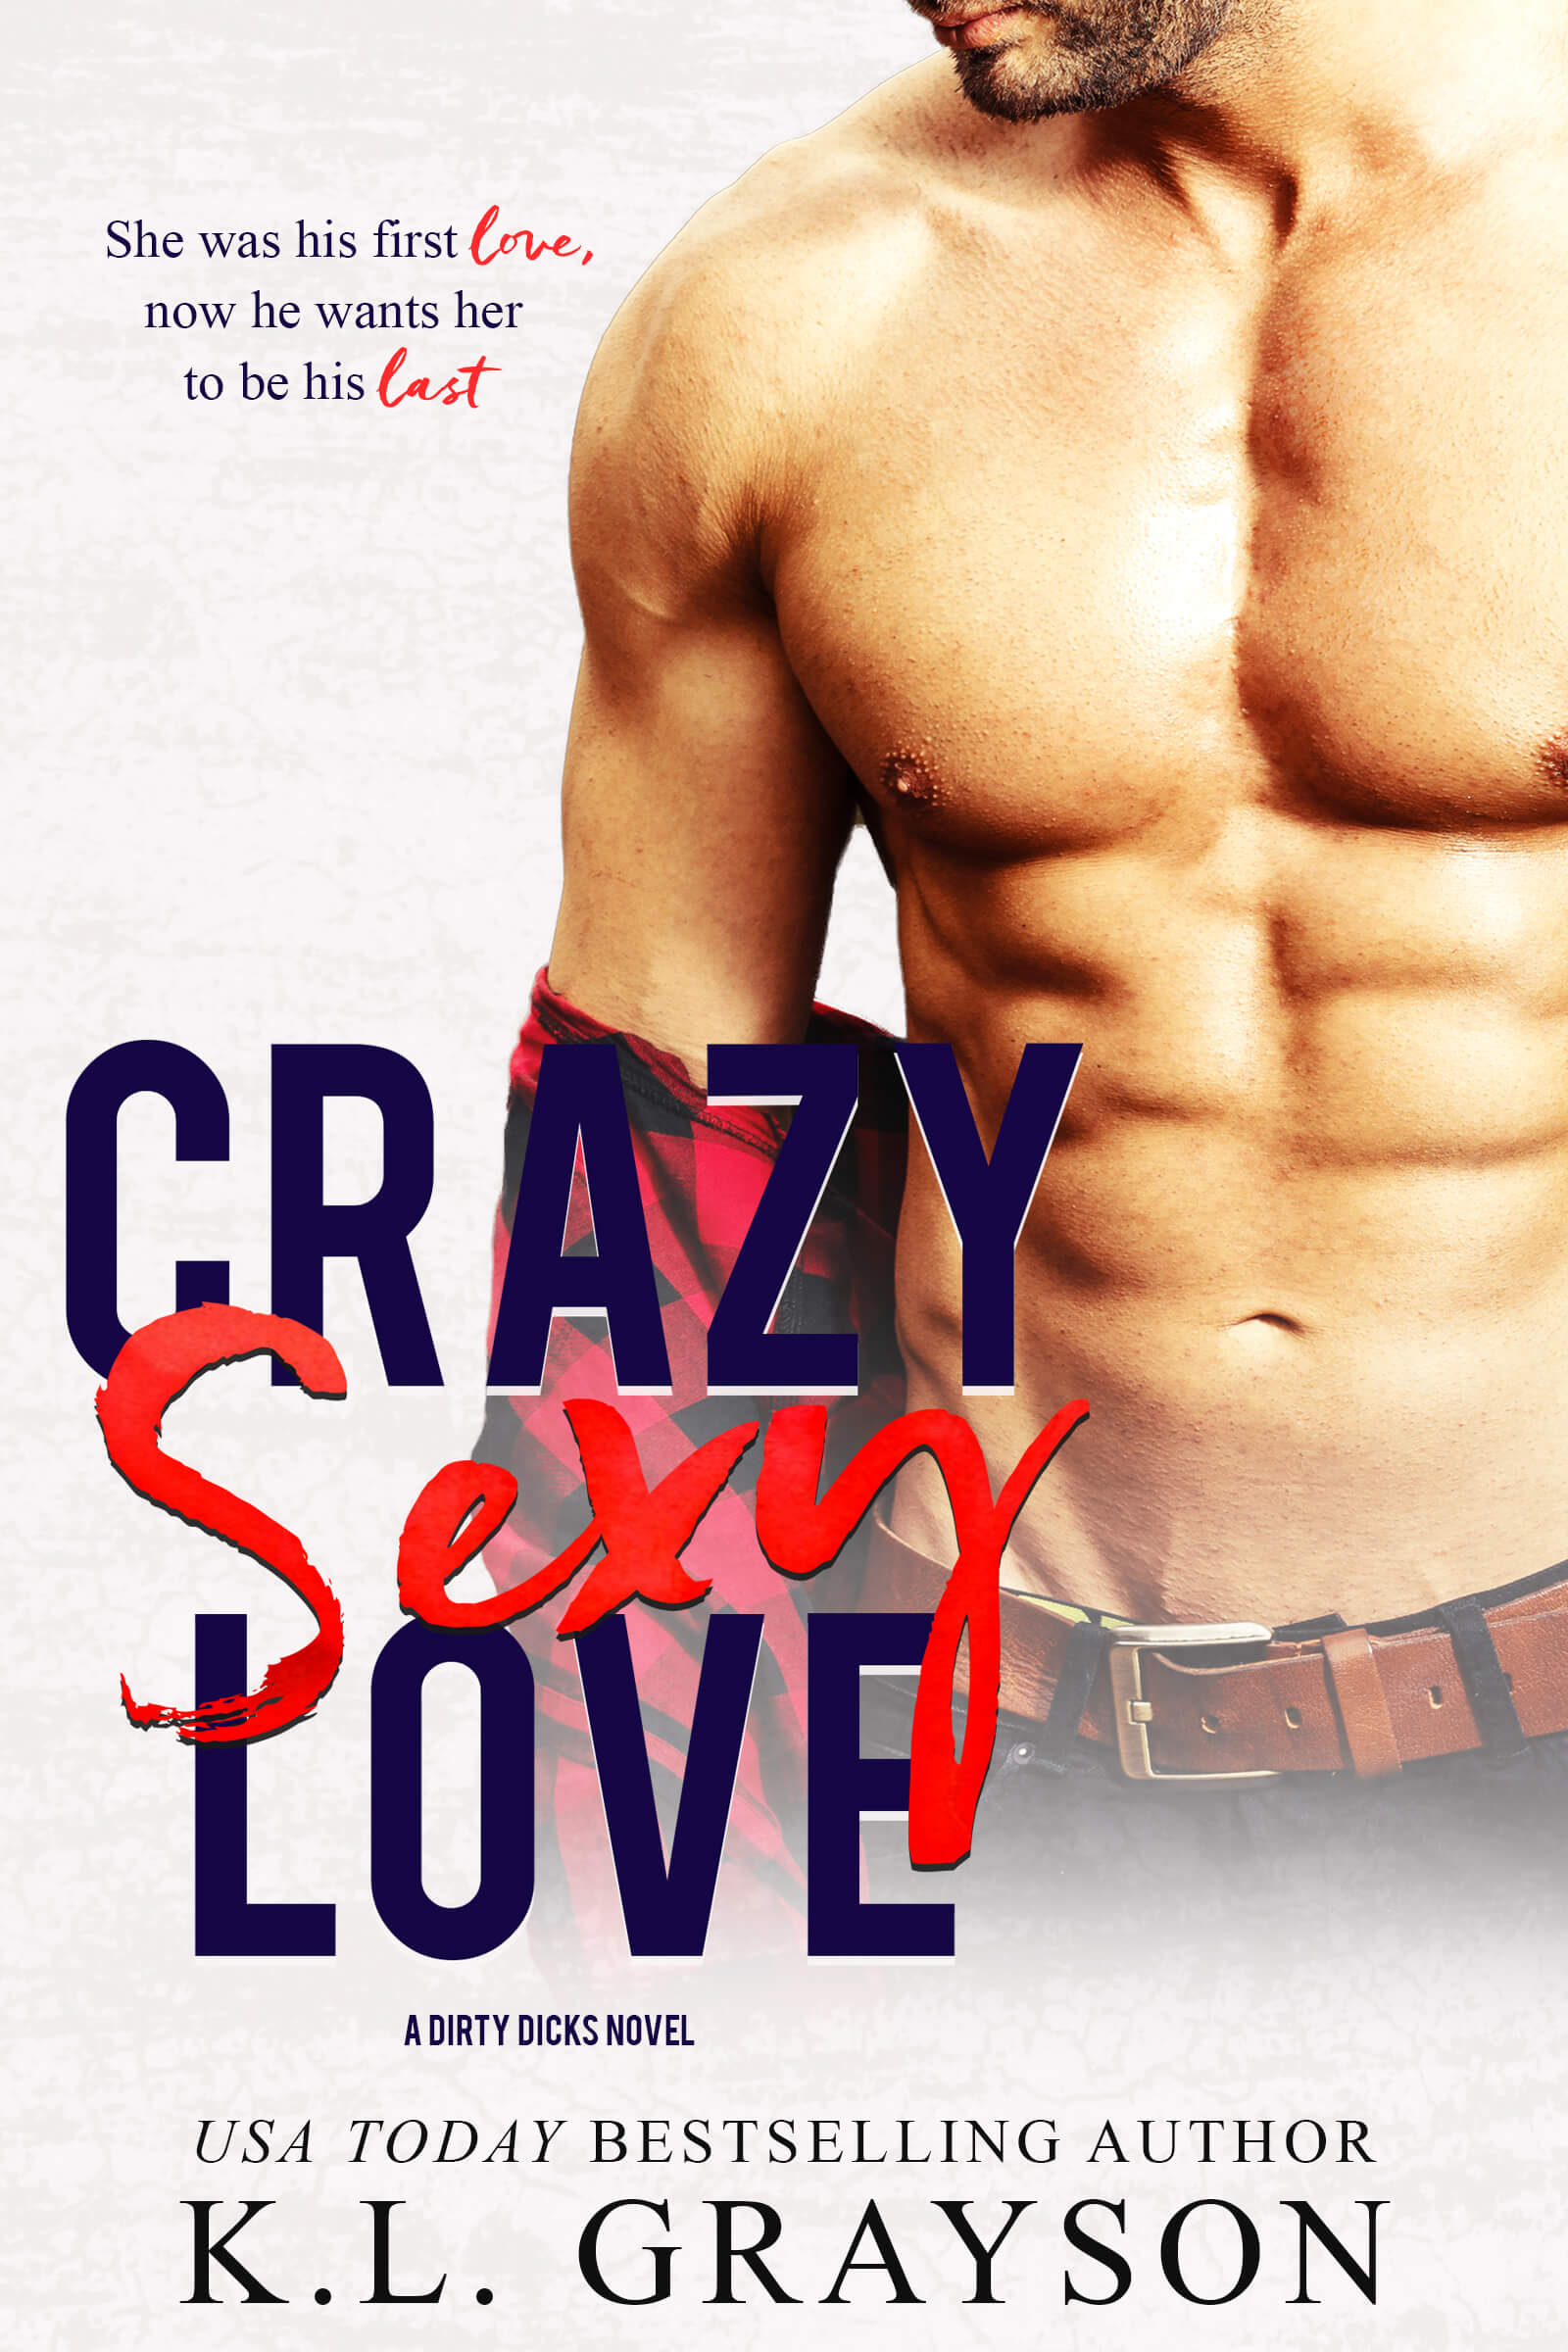 Crazy Sexy Love by KL Grayson